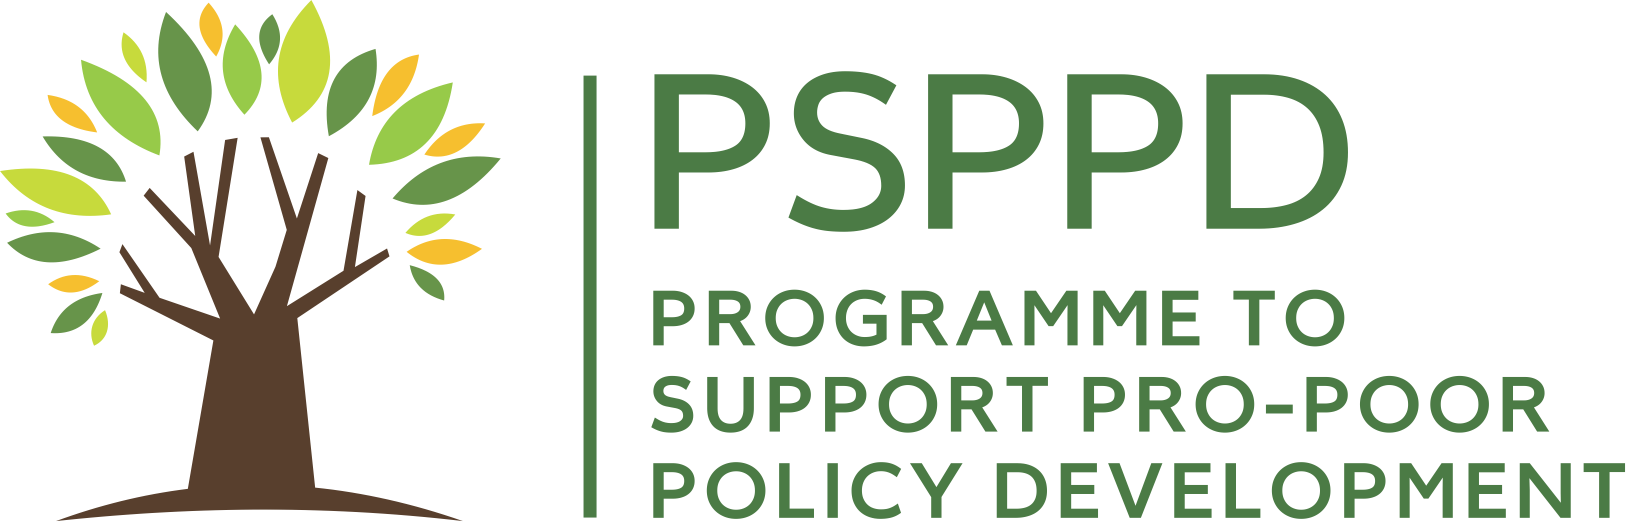 Programme to support pro-poor policy development